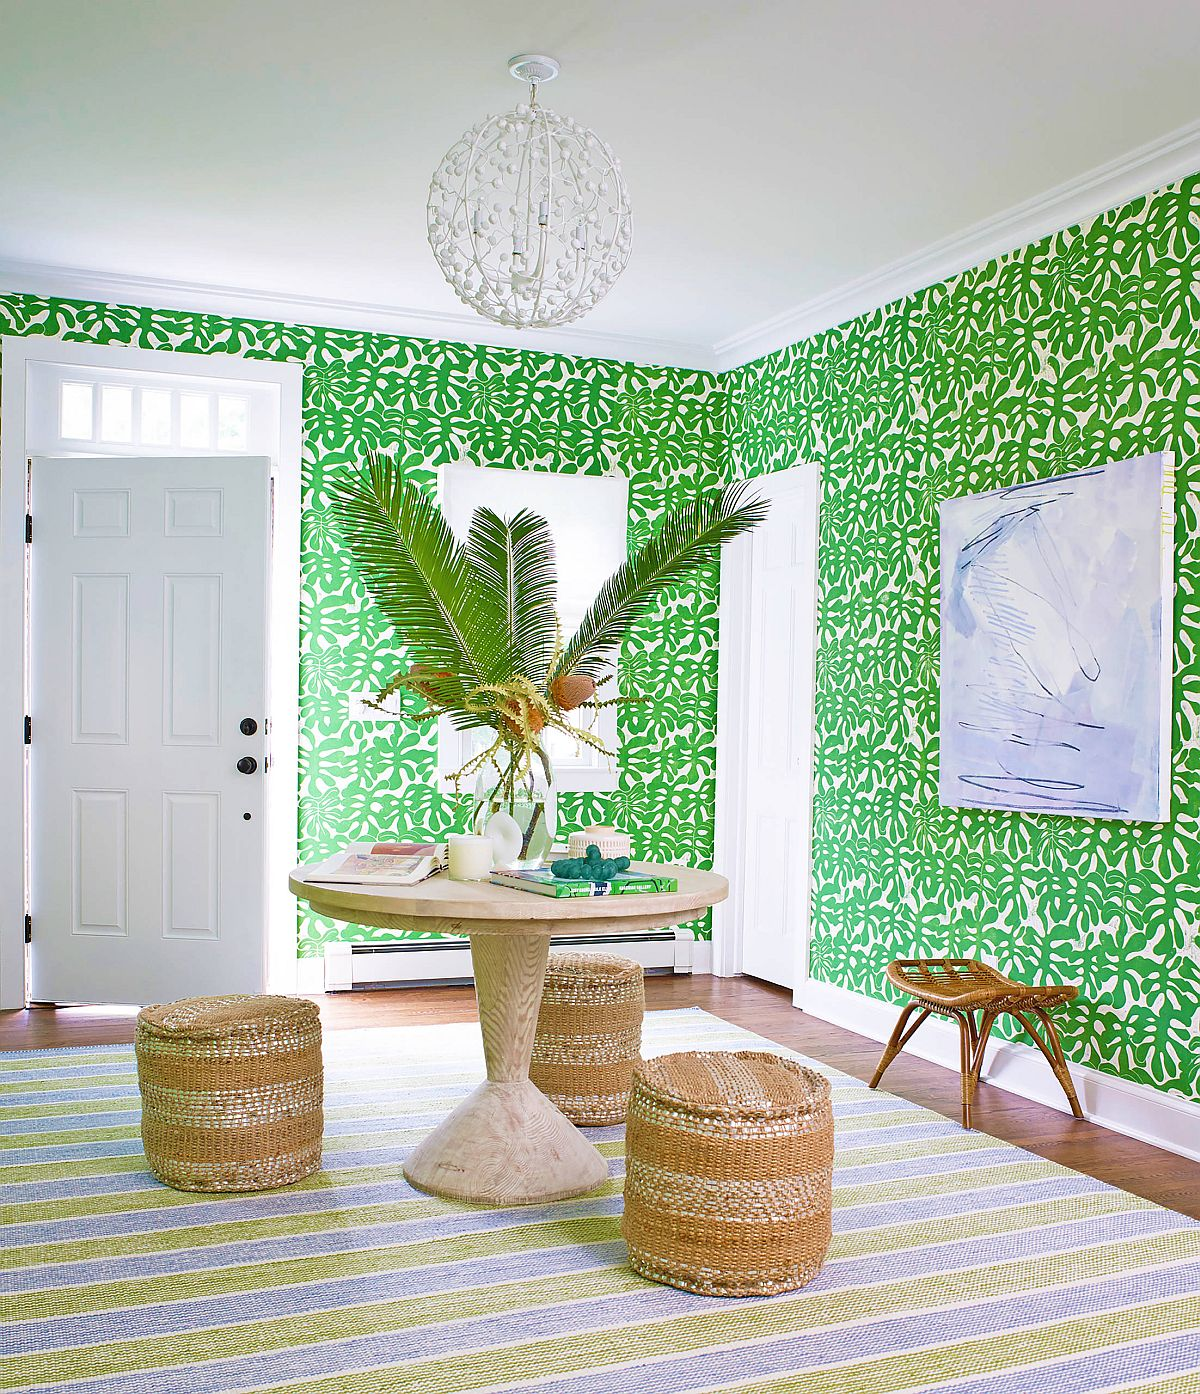 Lovely wallpaper in green adds color to the entryway along with beautiful striped rug